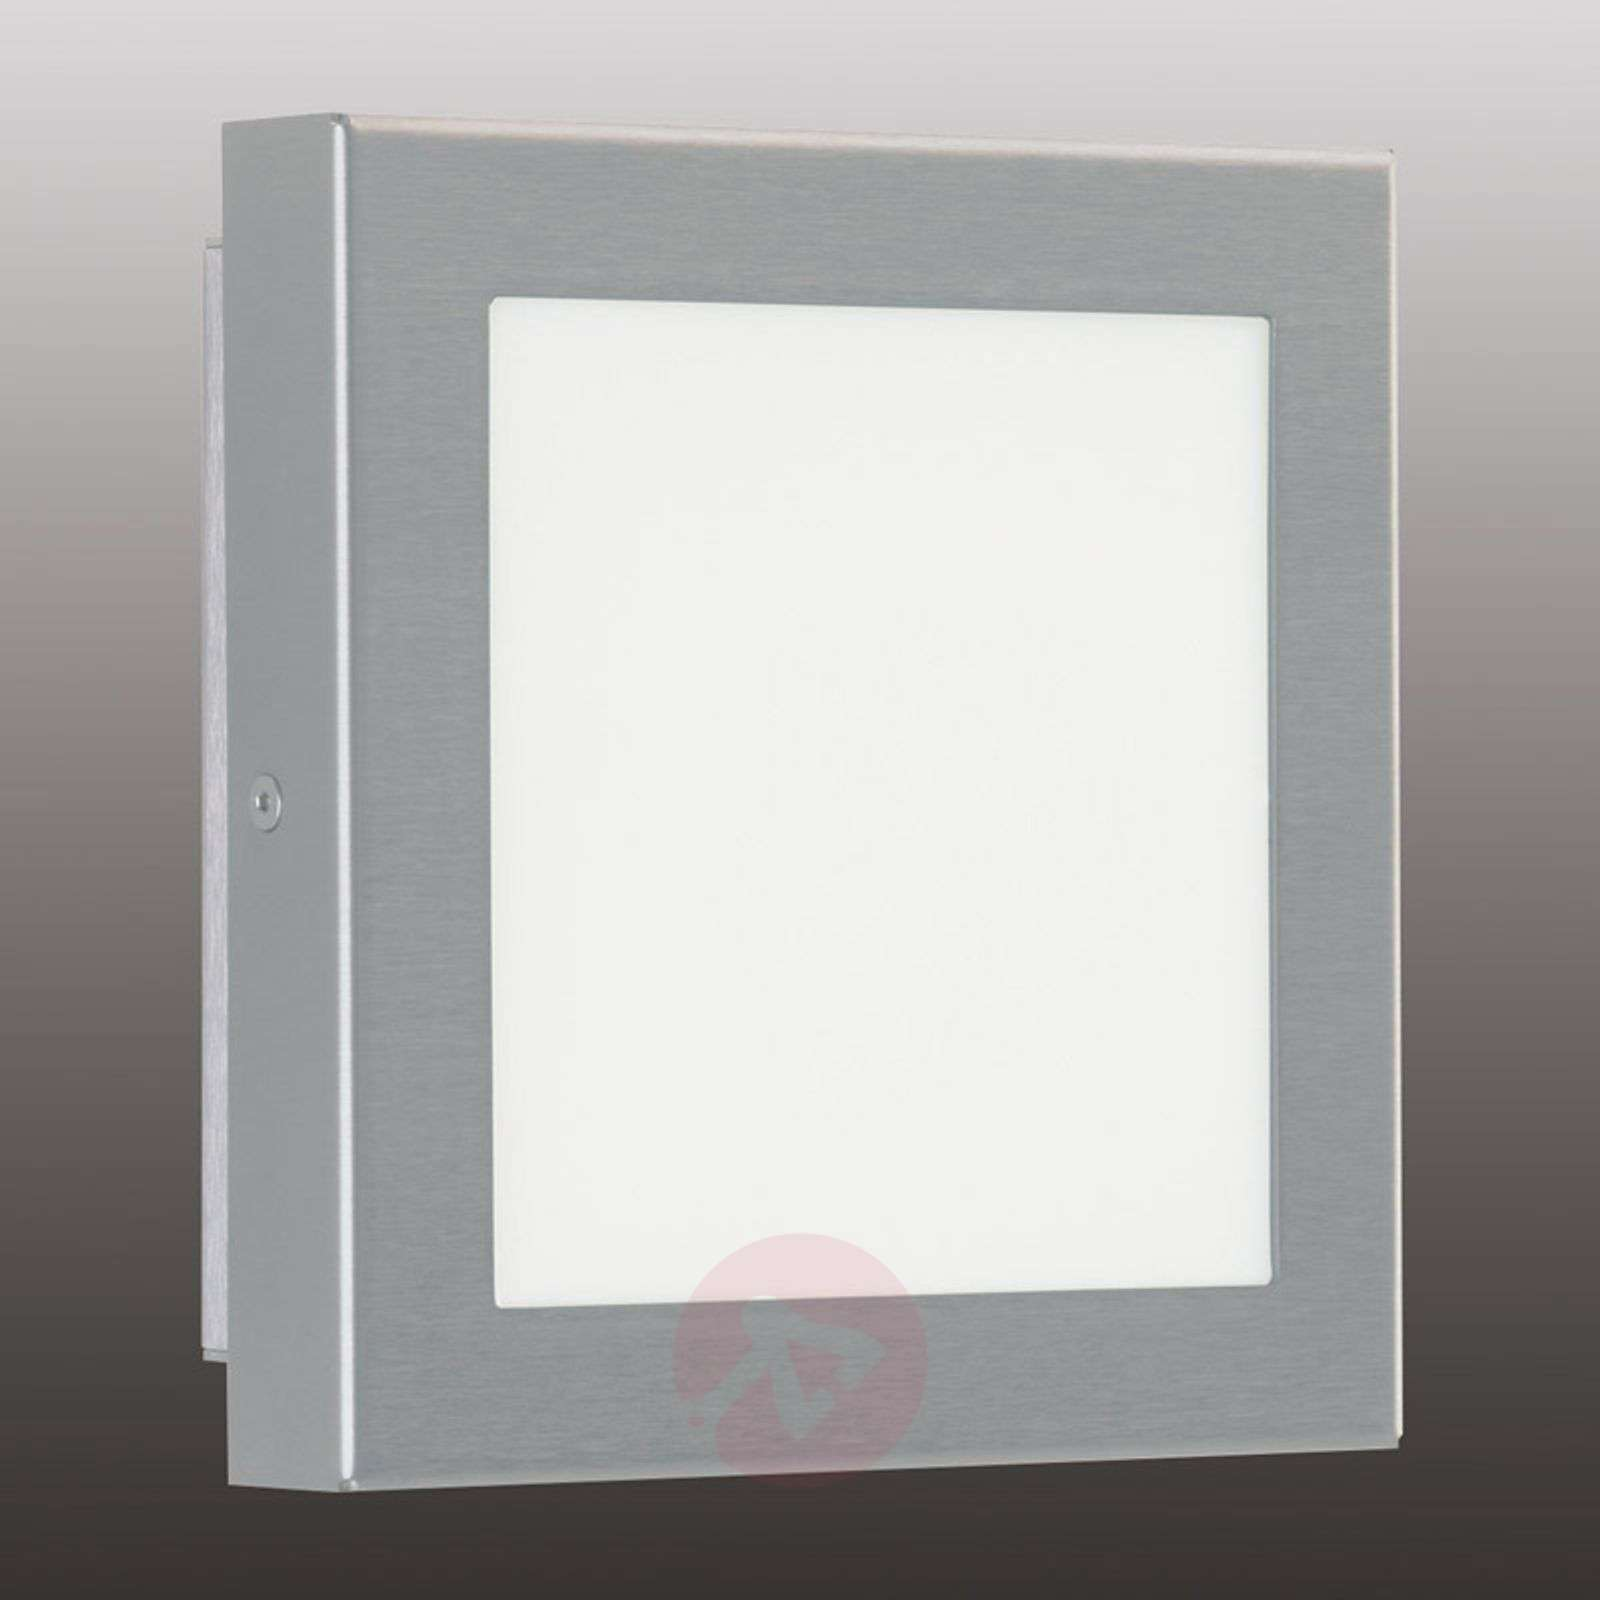 LED outdoor wall light Mette, stainless steel, 8 W-4000308-01